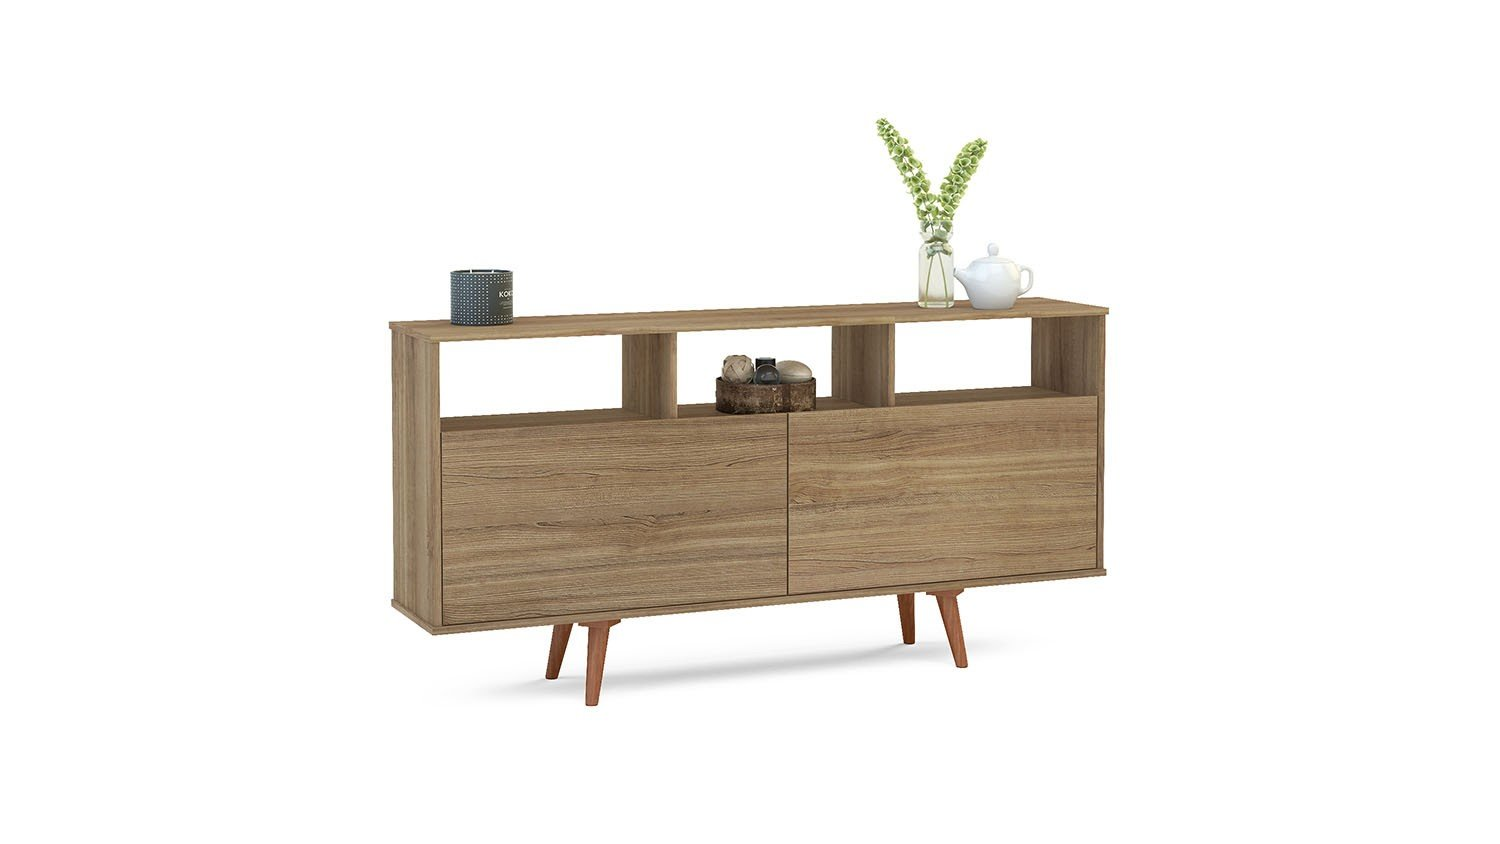 Boahaus Contemporary Side Board, Brown, 2 closed compartment, 3 open spaces - Gives good modern style to your living room Two large compartments to storage your needs Three open shelves to put your best souvenirs - sideboards-buffets, kitchen-dining-room-furniture, kitchen-dining-room - 61NaY9hTnIL -